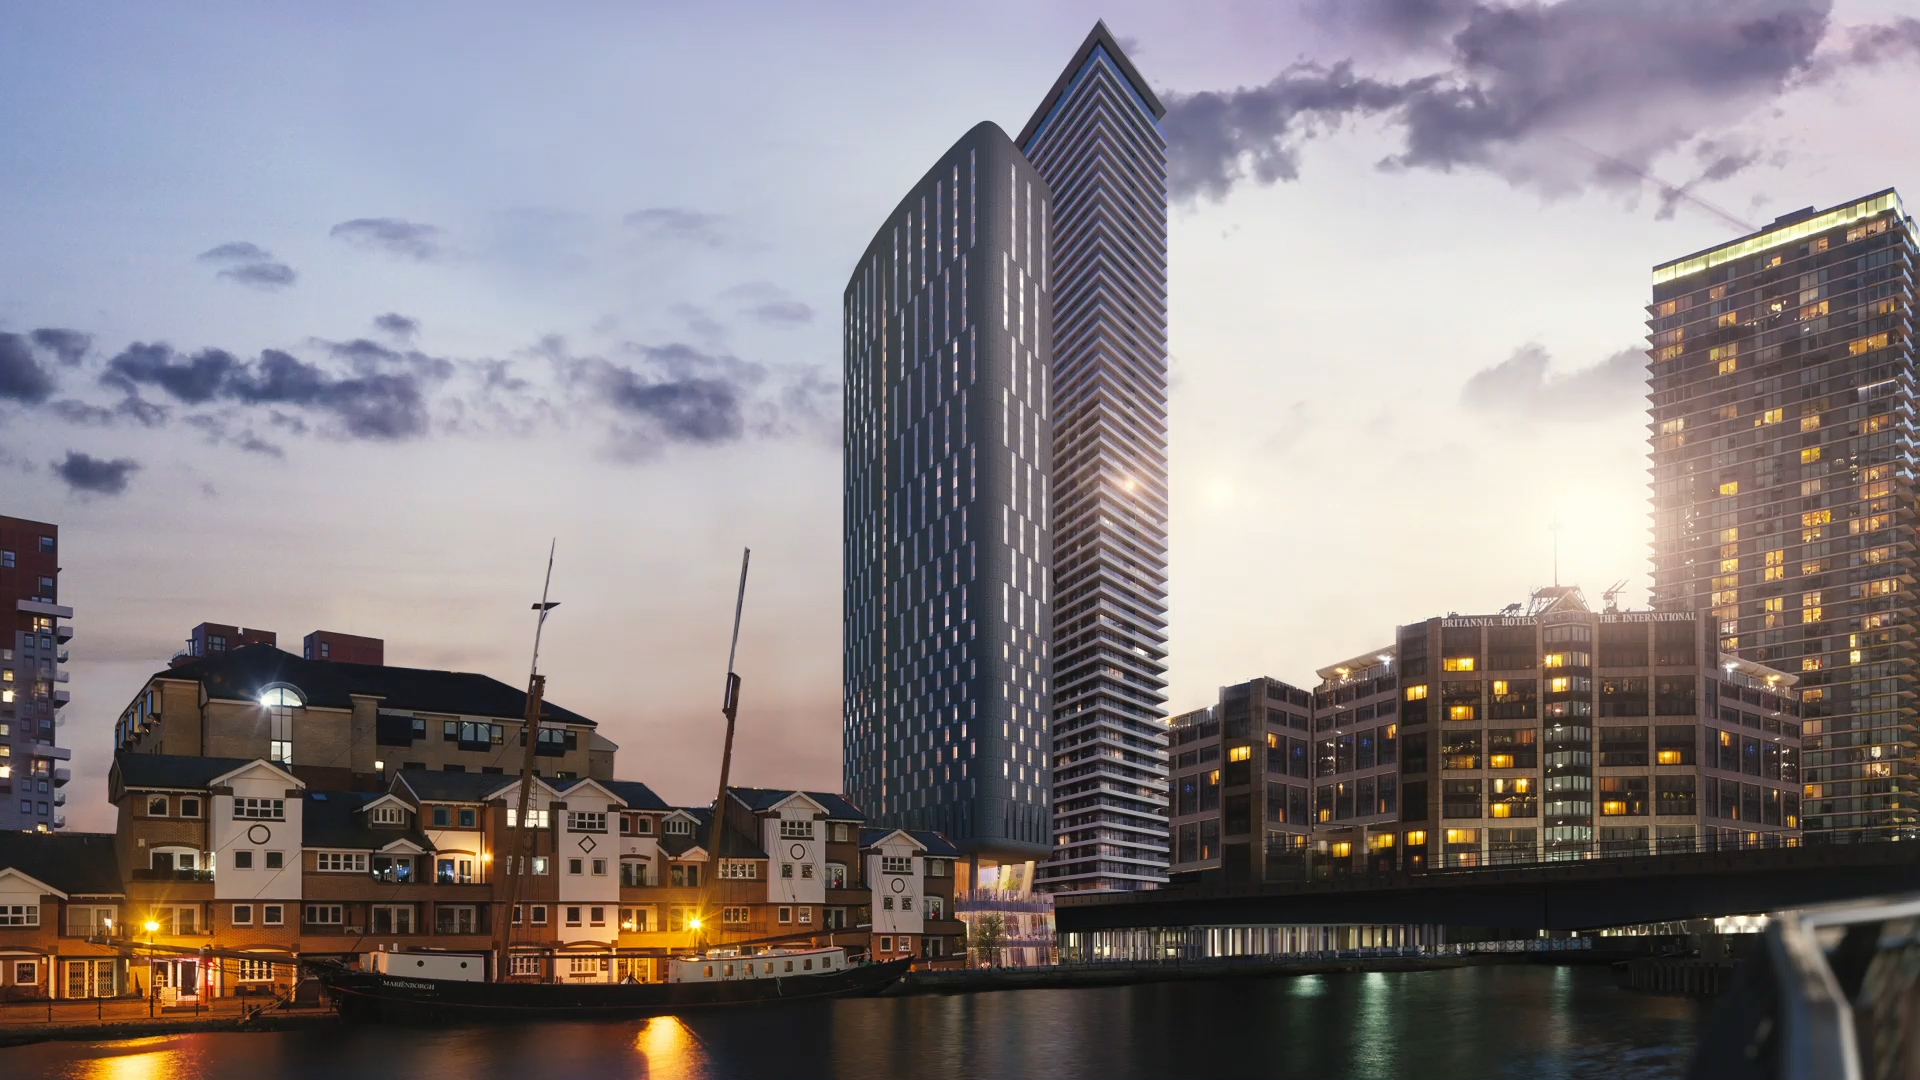 New plans submitted for the redevelopment of Quay House – Rockwell